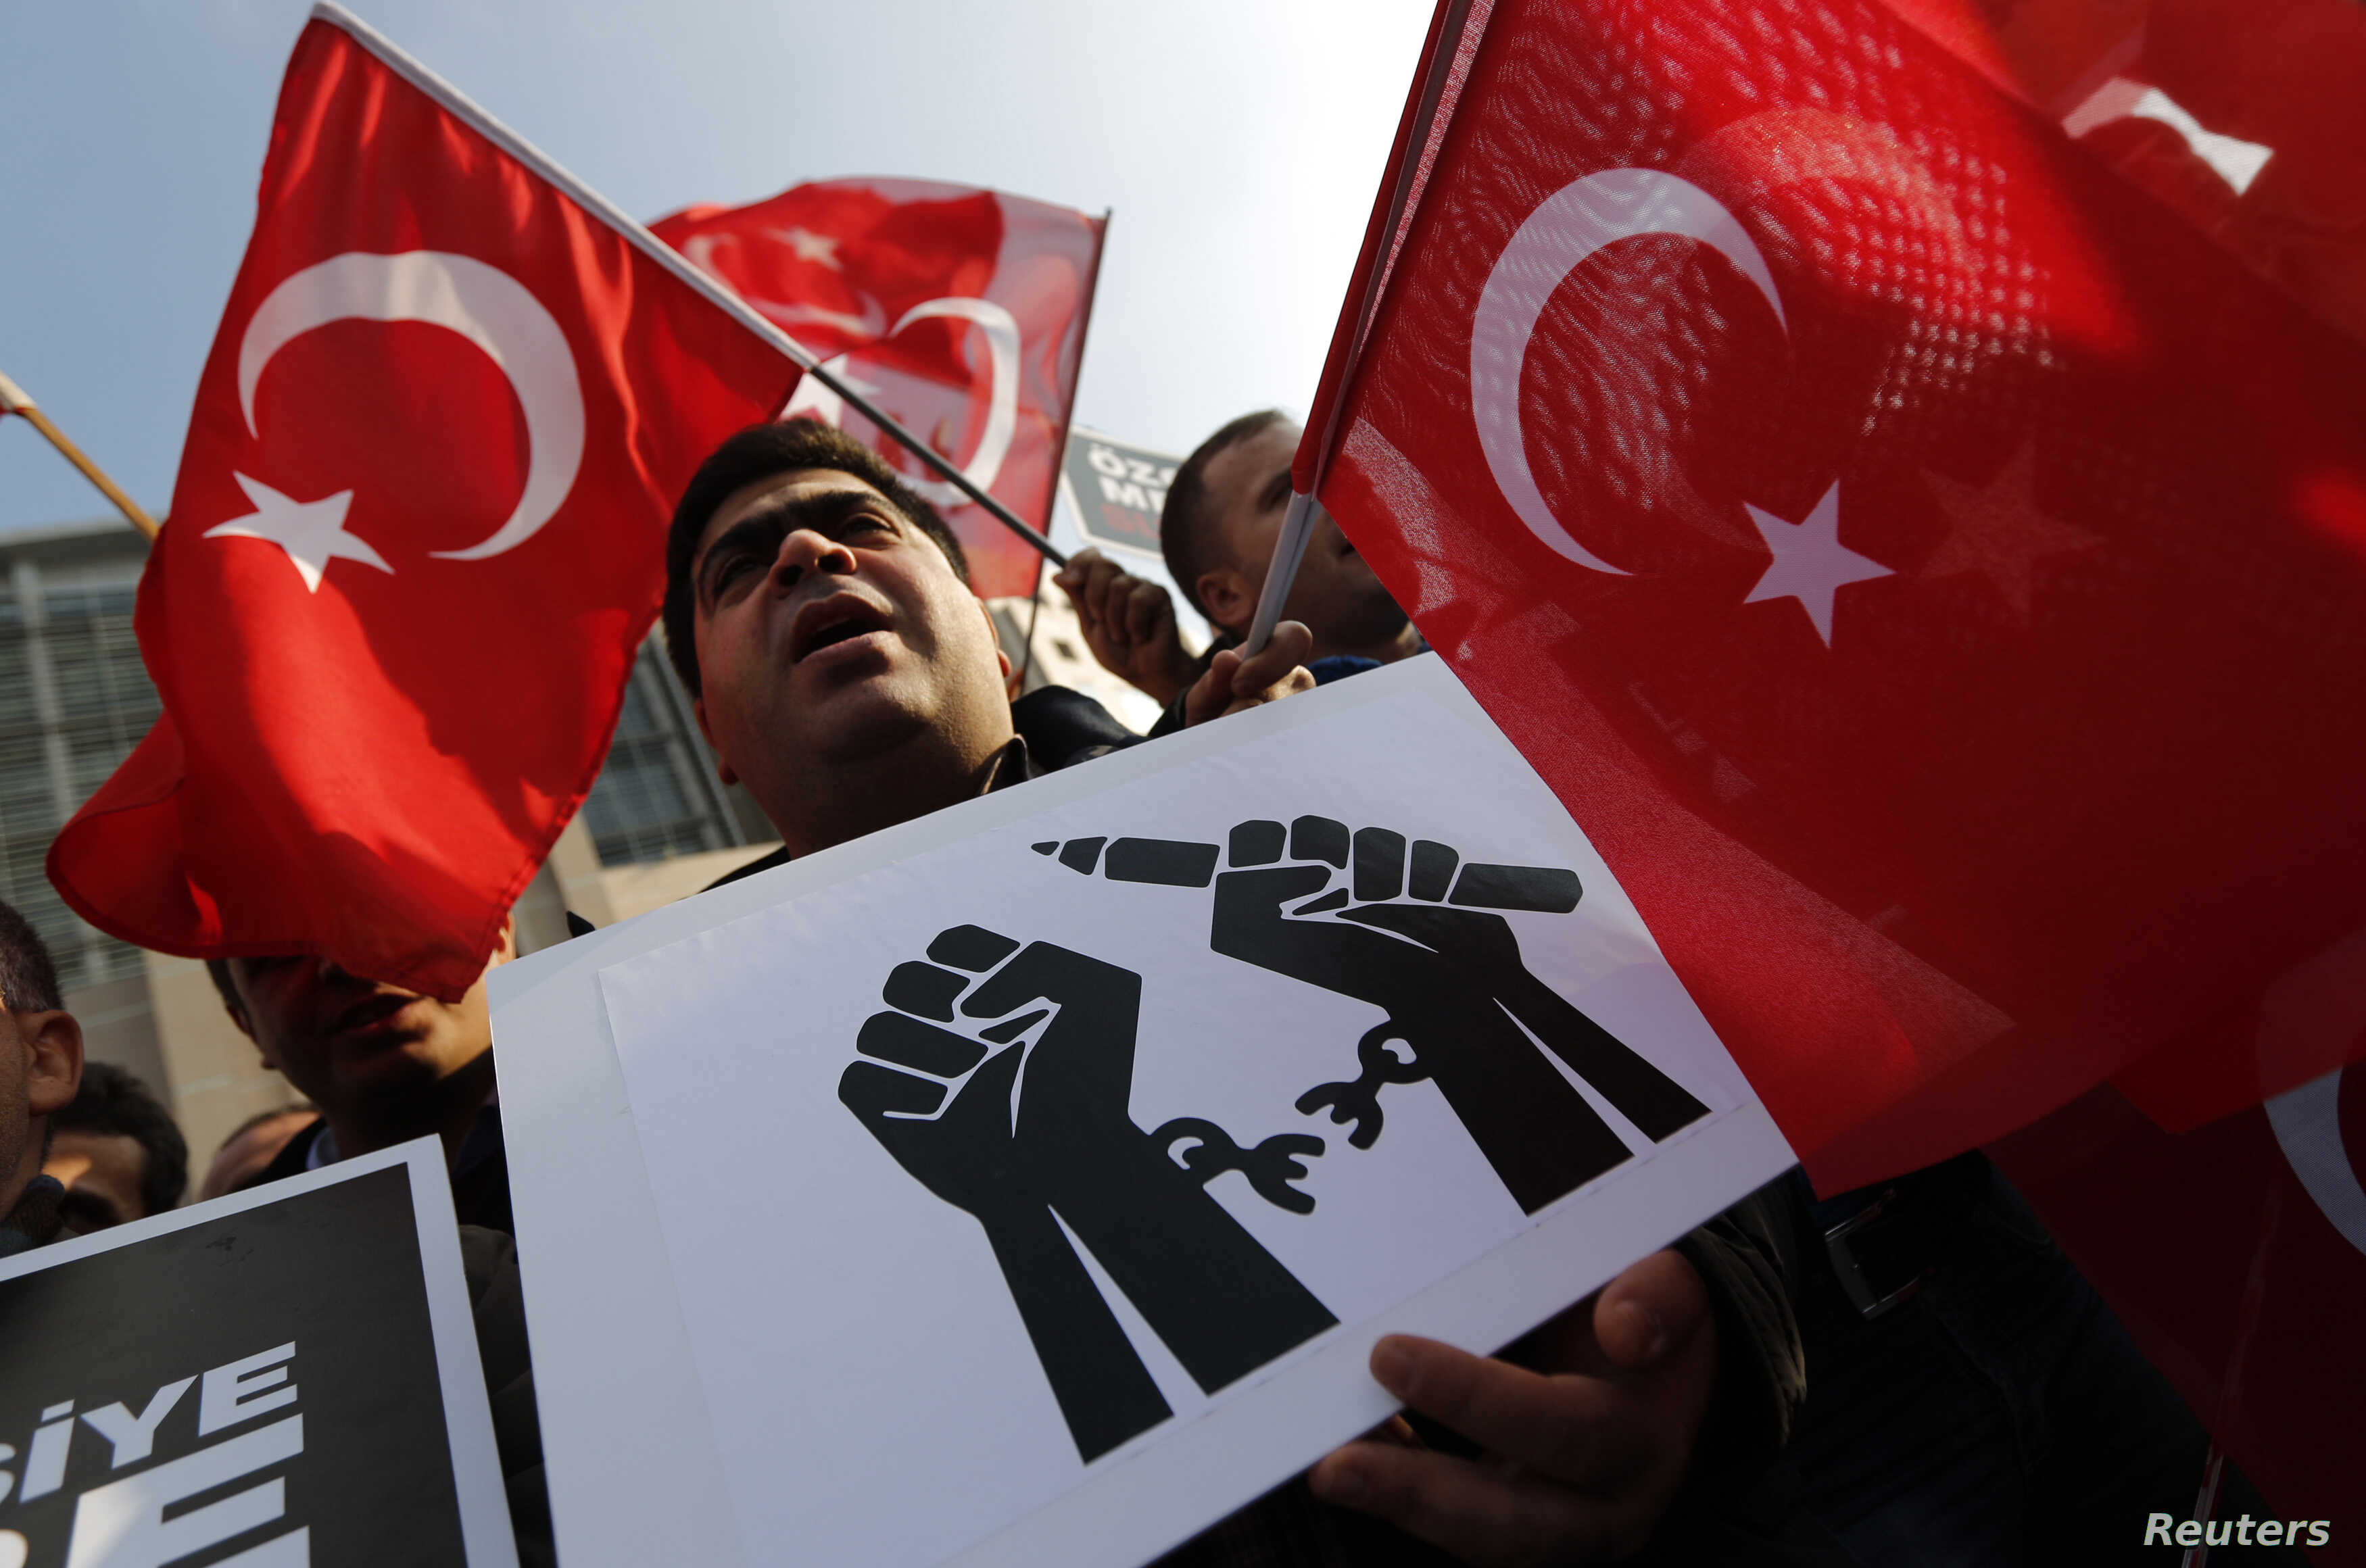 Supporters of the Gulen movement wave Turkish flags as they gather outside the Justice Palace in Istanbul, Dec. 19, 2014.